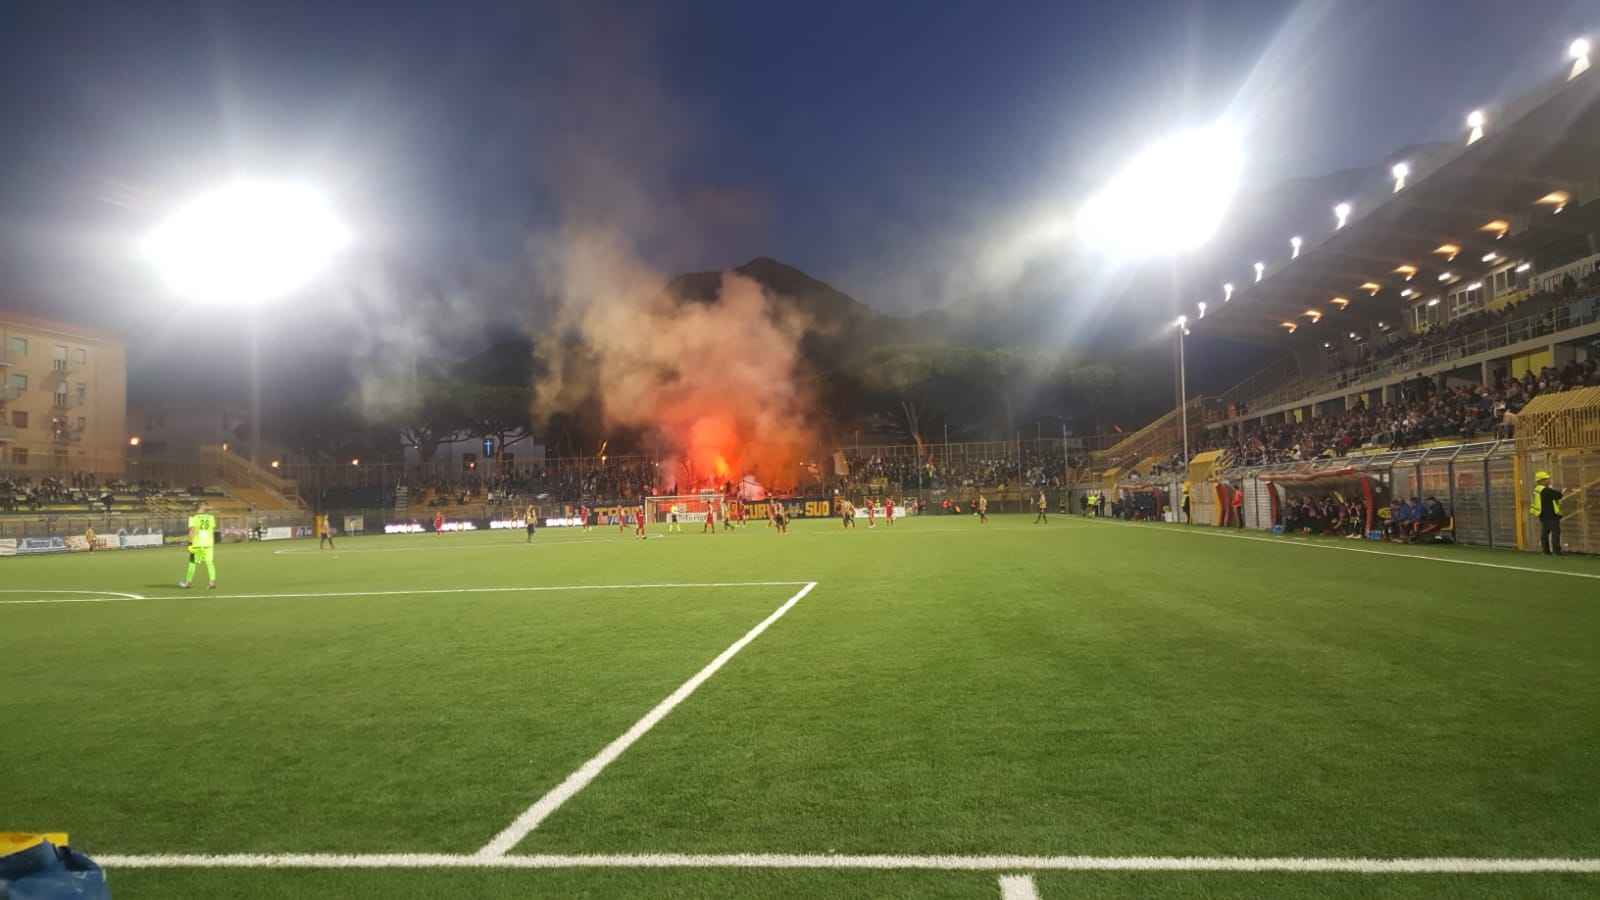 Juve Stabia - Virtus Entella 2 a 2, le foto da bordo campo